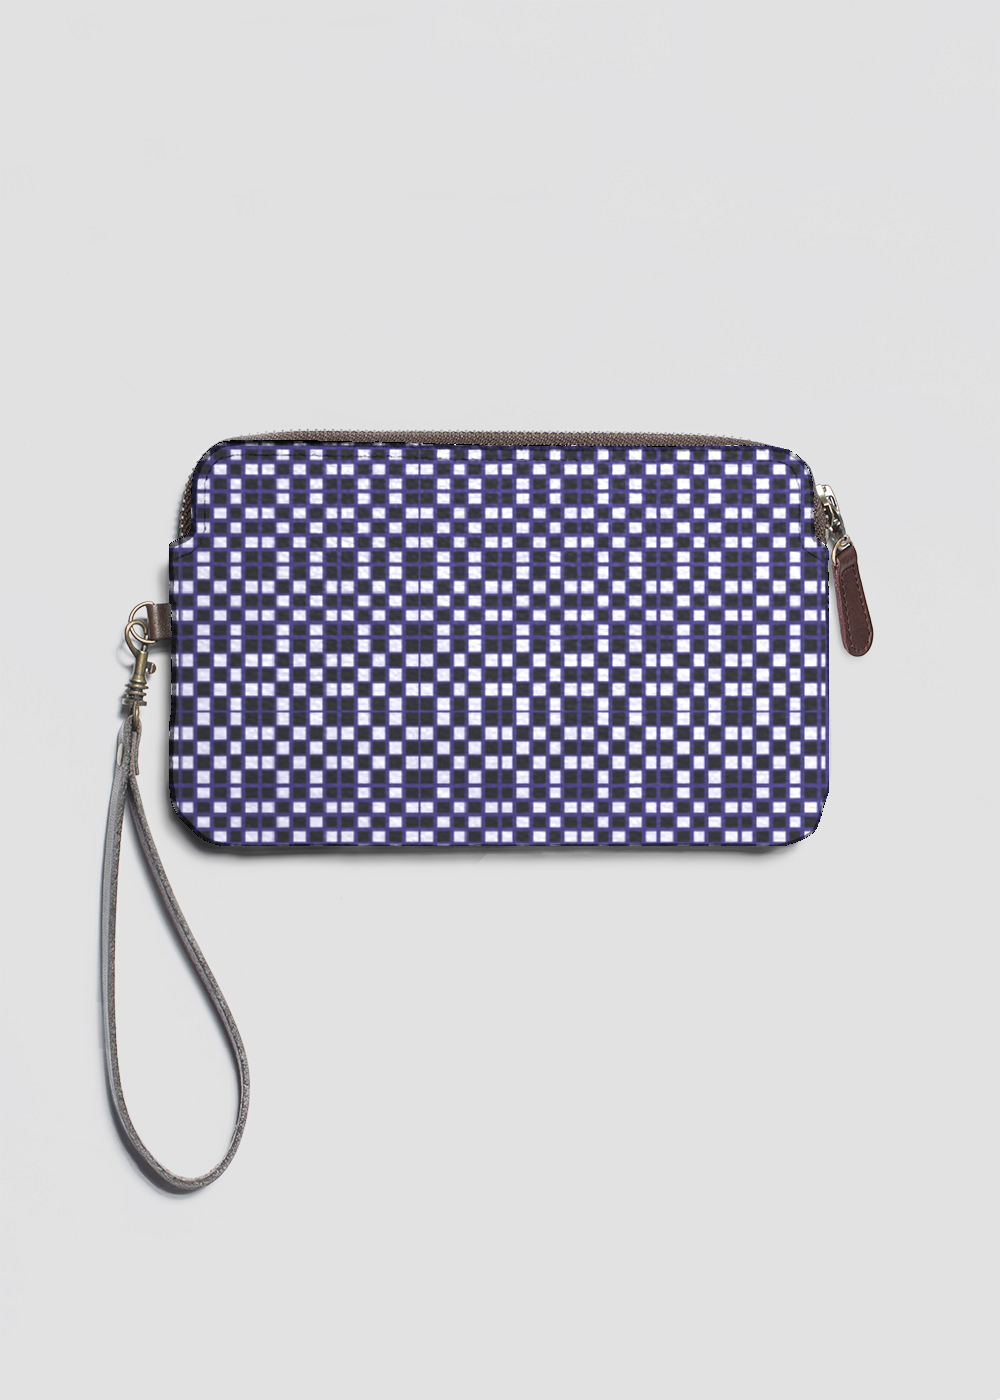 Leather Statement Clutch - Chicas by VIDA VIDA In China Cheap Online r8KYoDwG